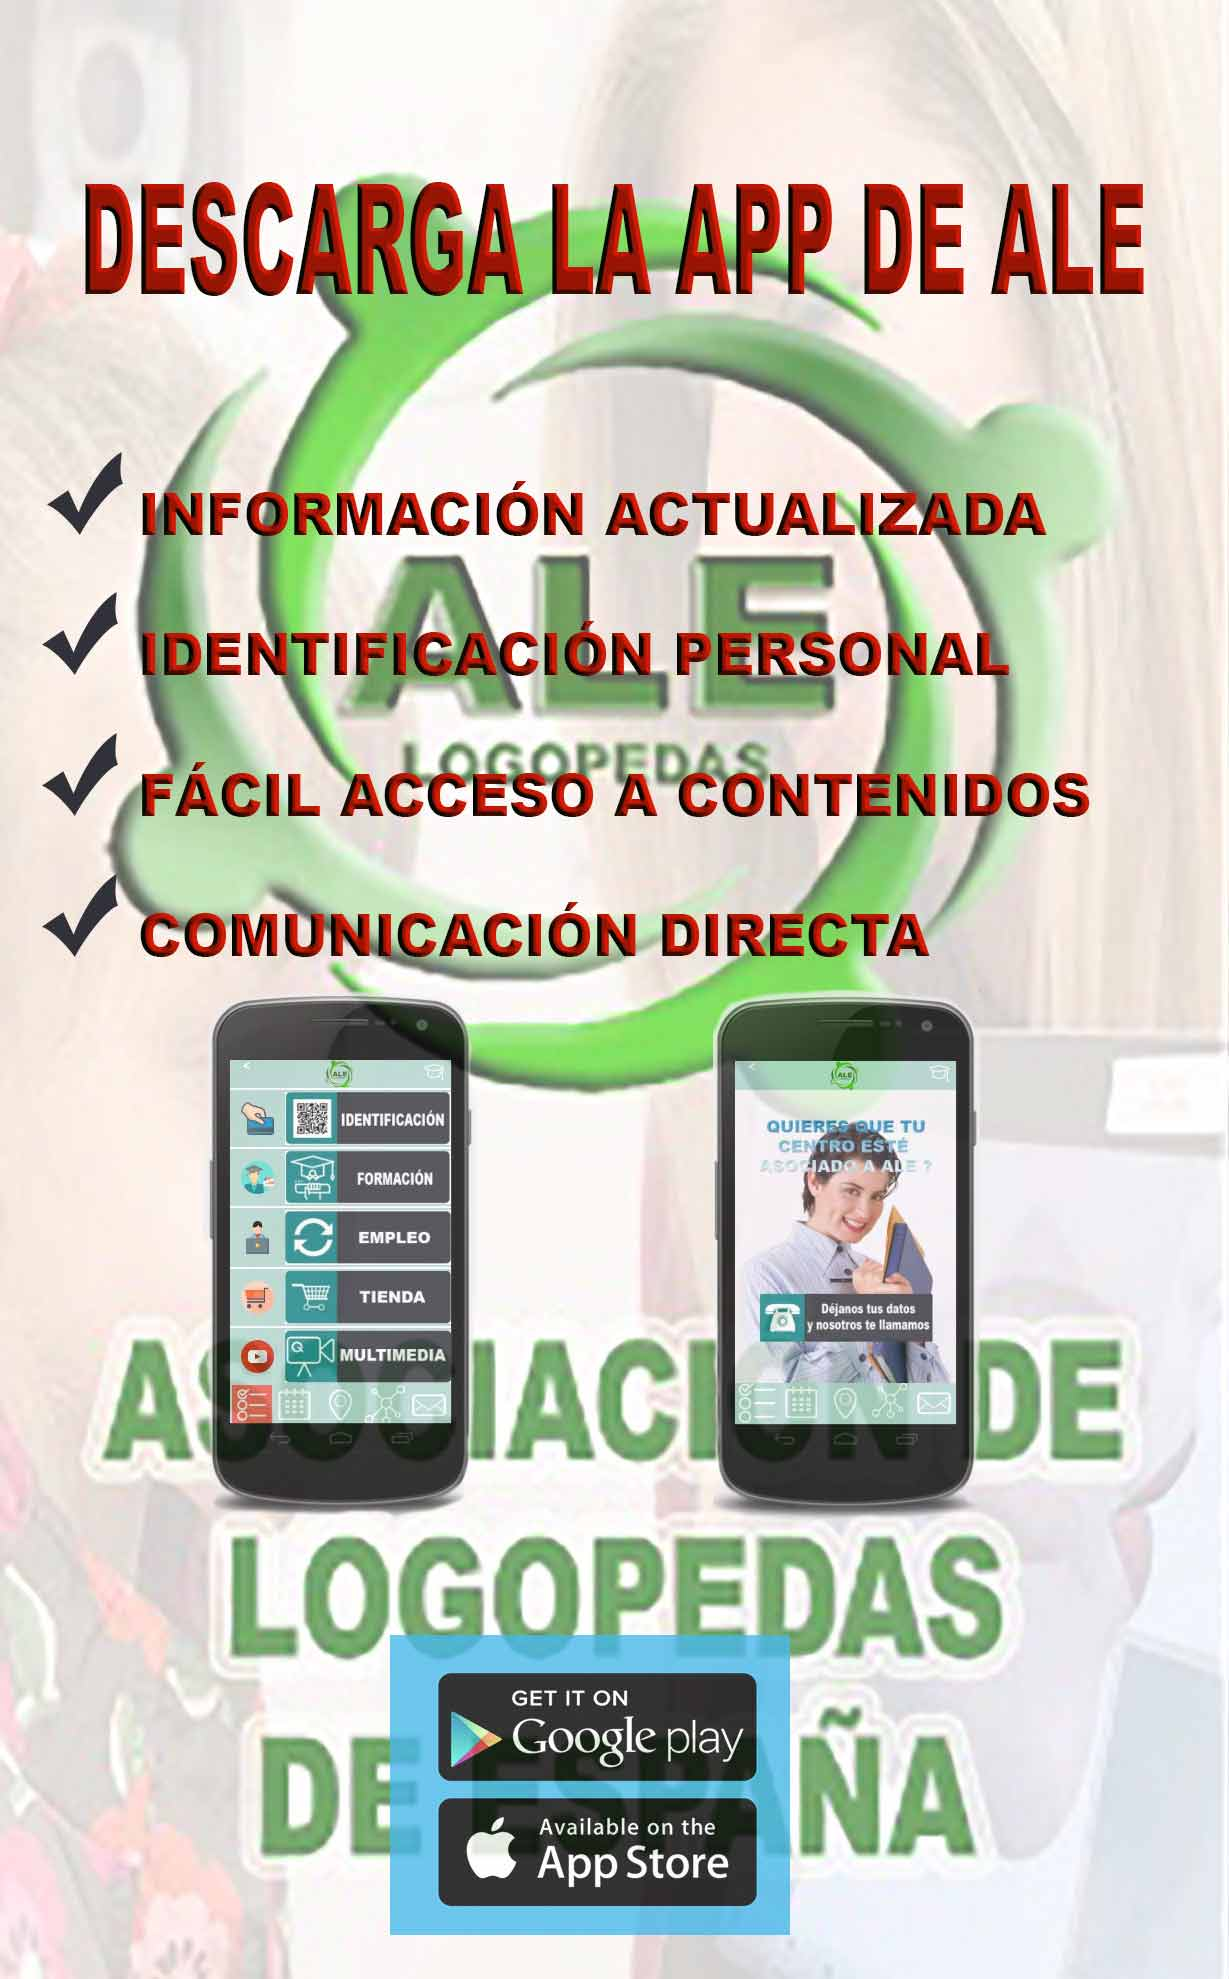 Descarga app ale 03